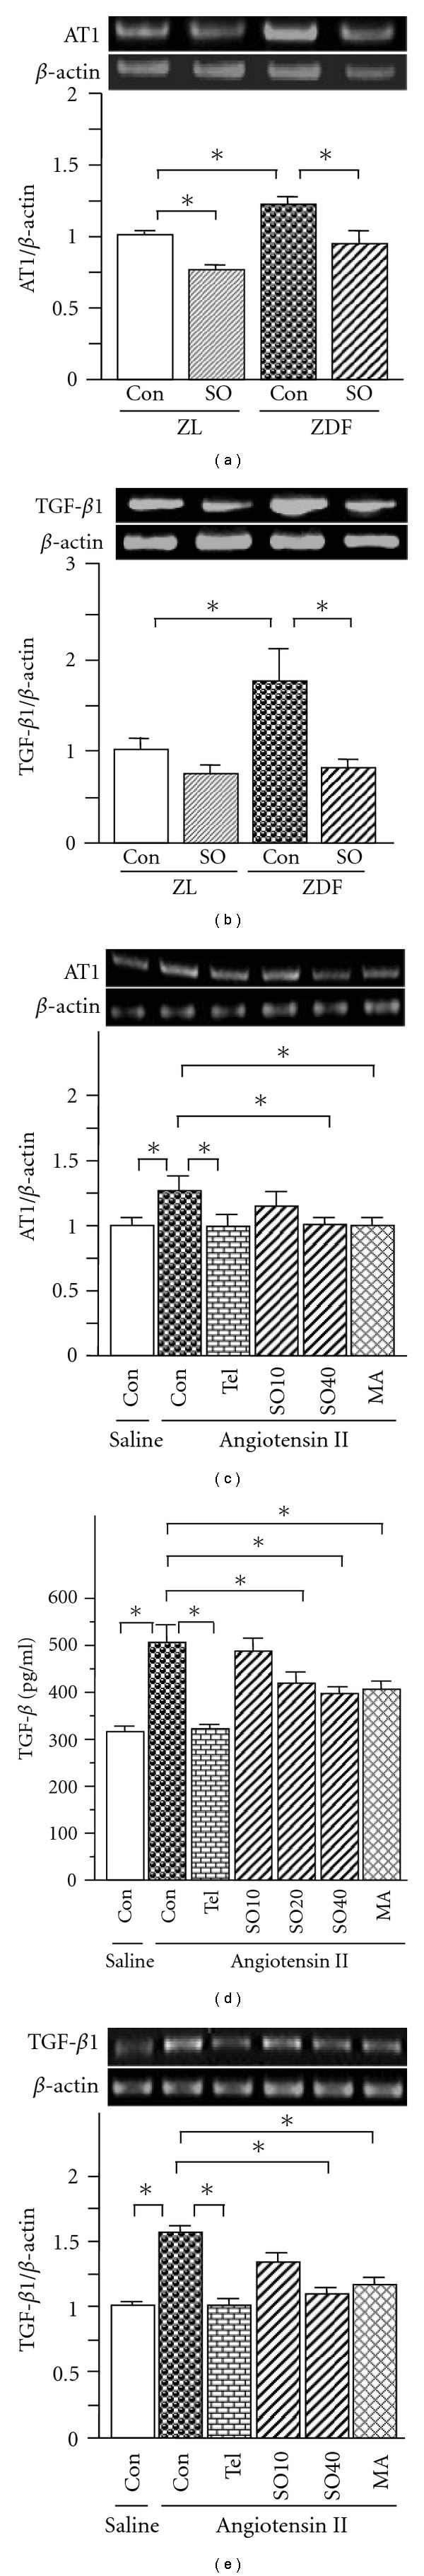 Renal expression of AT1 (a) and TGF- β 1 (b) in ZL and ZDF rats, and levels of AT1 (c) and TGF- β 1 (d) mRNAs, and TGF- β protein (e) in rat mesangial cells. In cell culture, SO (SO10: 10; SO20: 20 and SO40: 40 μ g/ml), MA (25 μ M) or telmisartan (Tel. 10 μ M) was added 1 h prior to treatment with angiotensin II (10 −6 M), followed by twenty-four hours incubation. Total RNA was extracted from renal tissues and the mesangial cells using TRIzol, respectively. The relative levels of specific mRNAs were determined by RT–PCR. Results were normalized to β -actin. In a parallel experiment, the medium was collected after mesangial cells were treated with the test agents in combination with angiotensin II. TGF- β protein level was determined by commercial ELISA kit according to the manufacturer's instructions. All values are means ± SEM ( n = 5, each group in vivo ; n = 3, each group in vitro ). * P